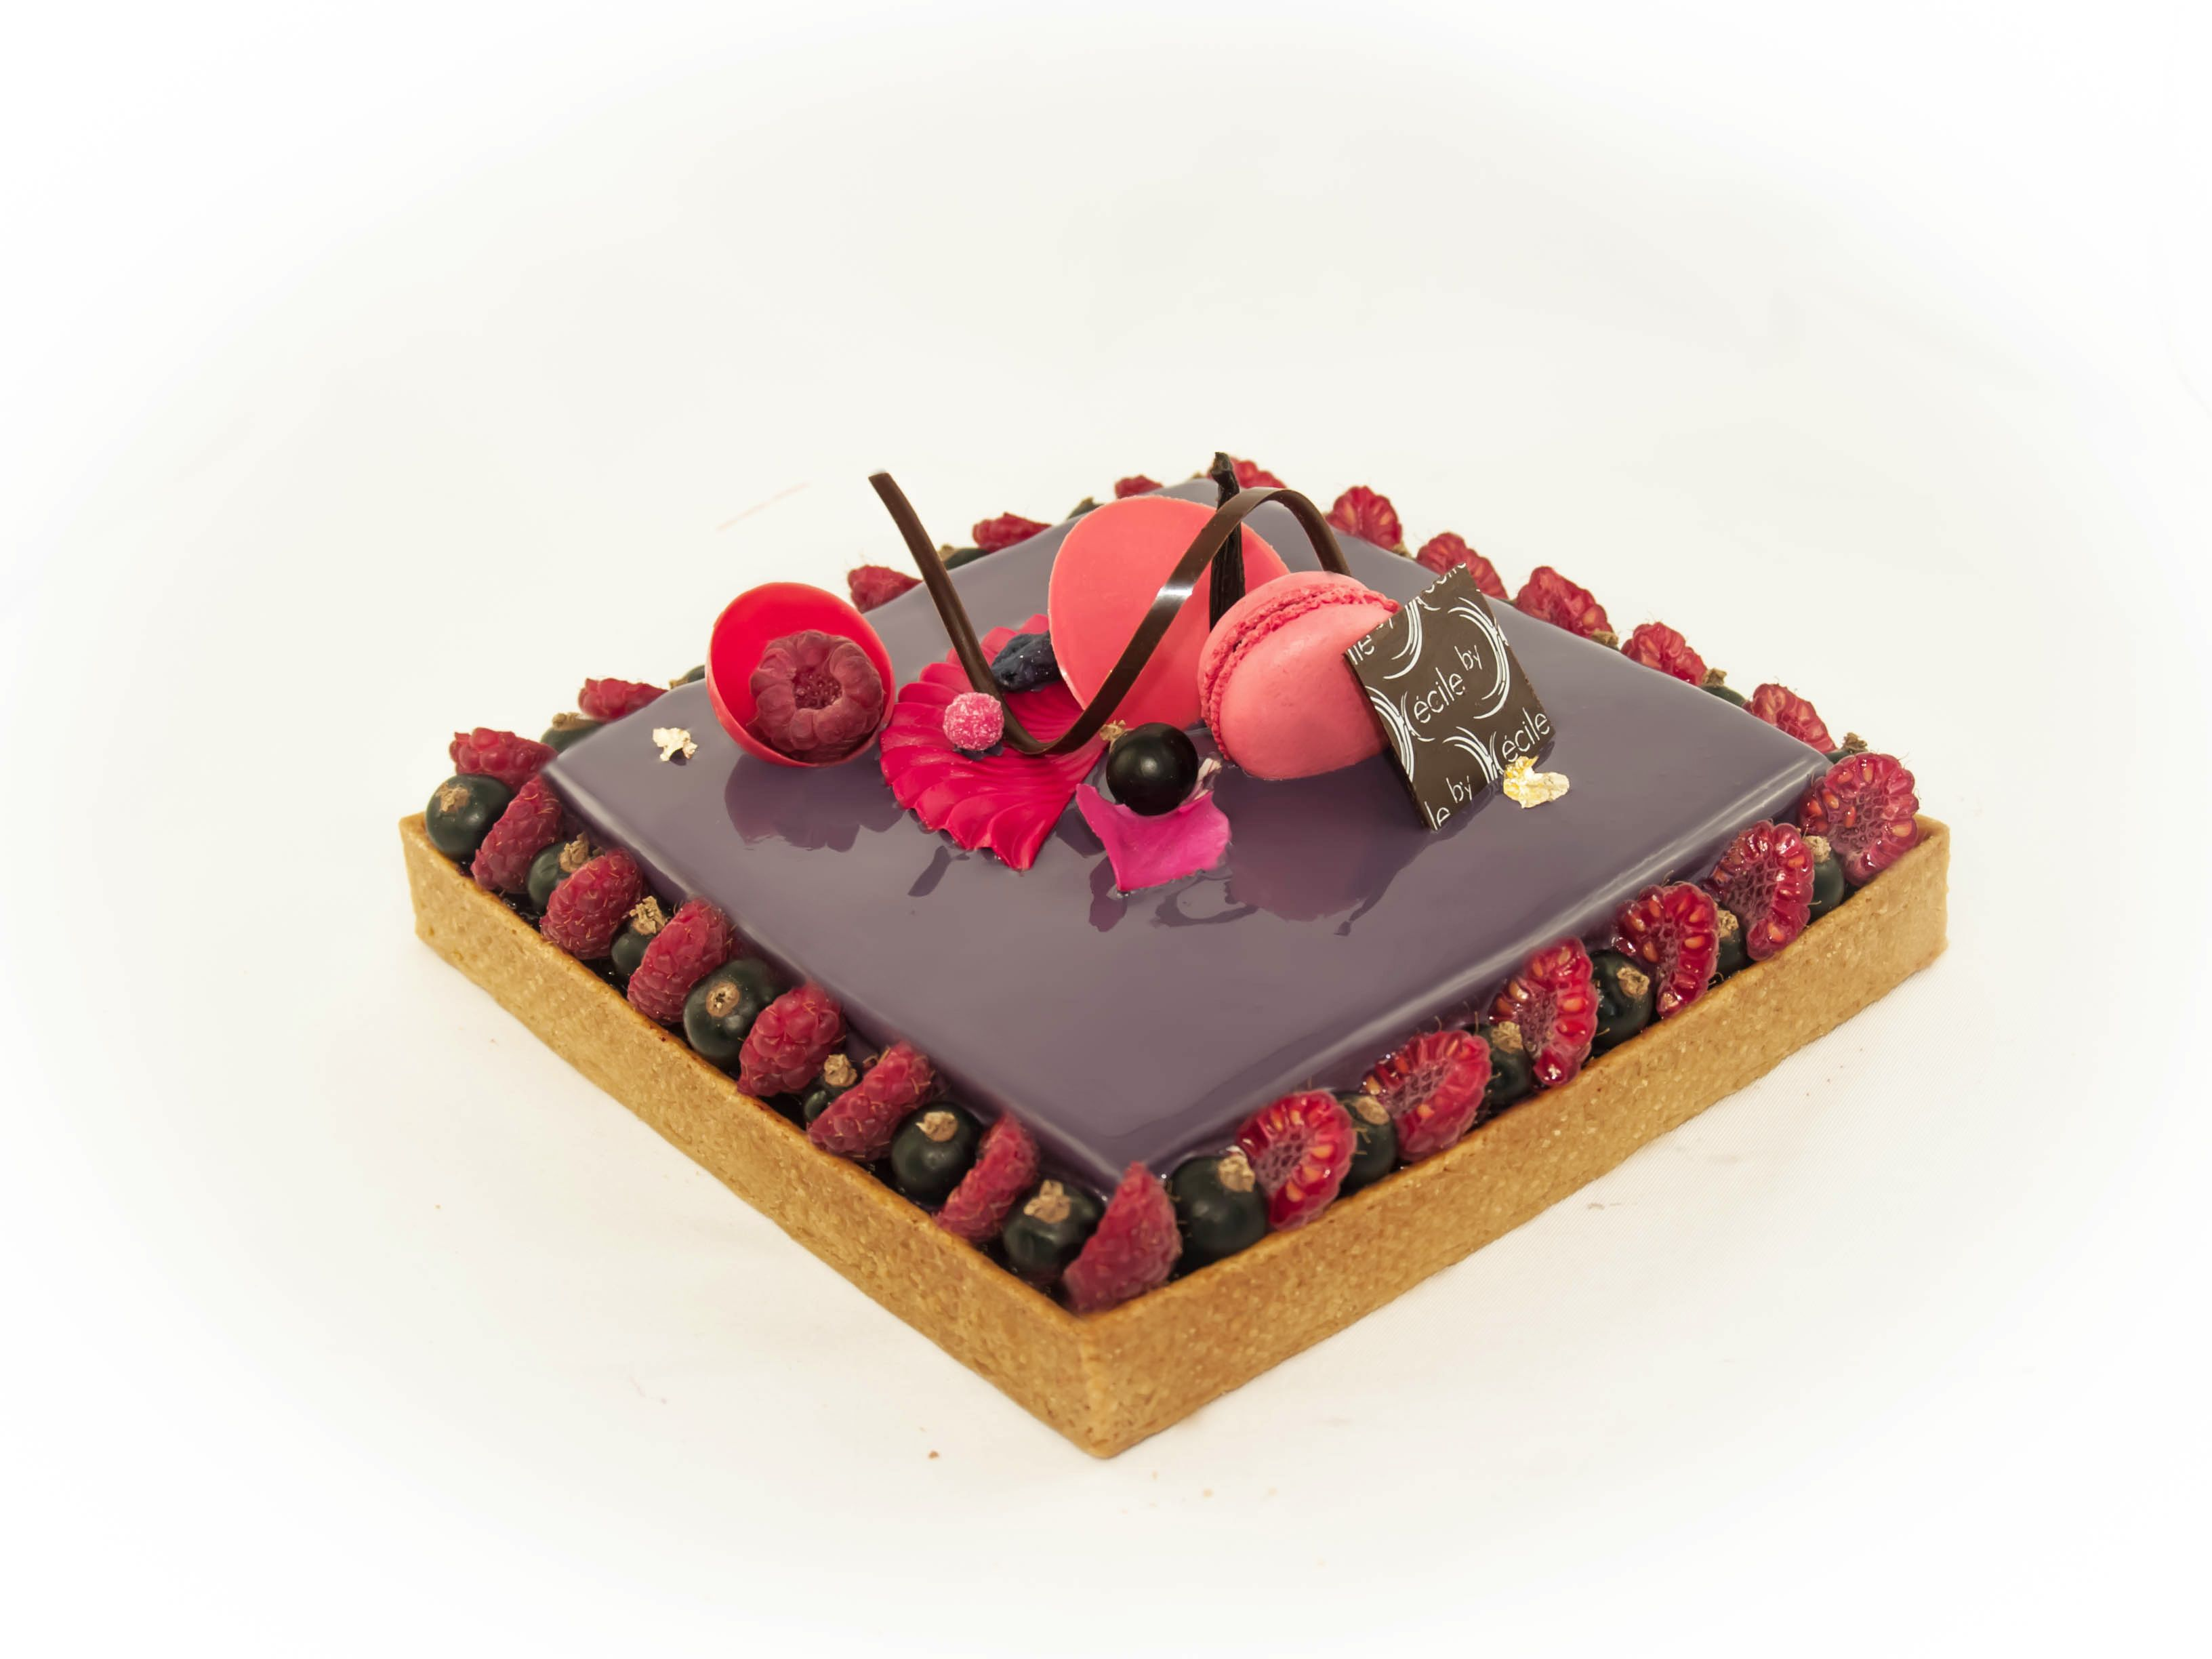 Tarte vanille cassis p te sucr e pralin biscuit for Miroir fruit rouge